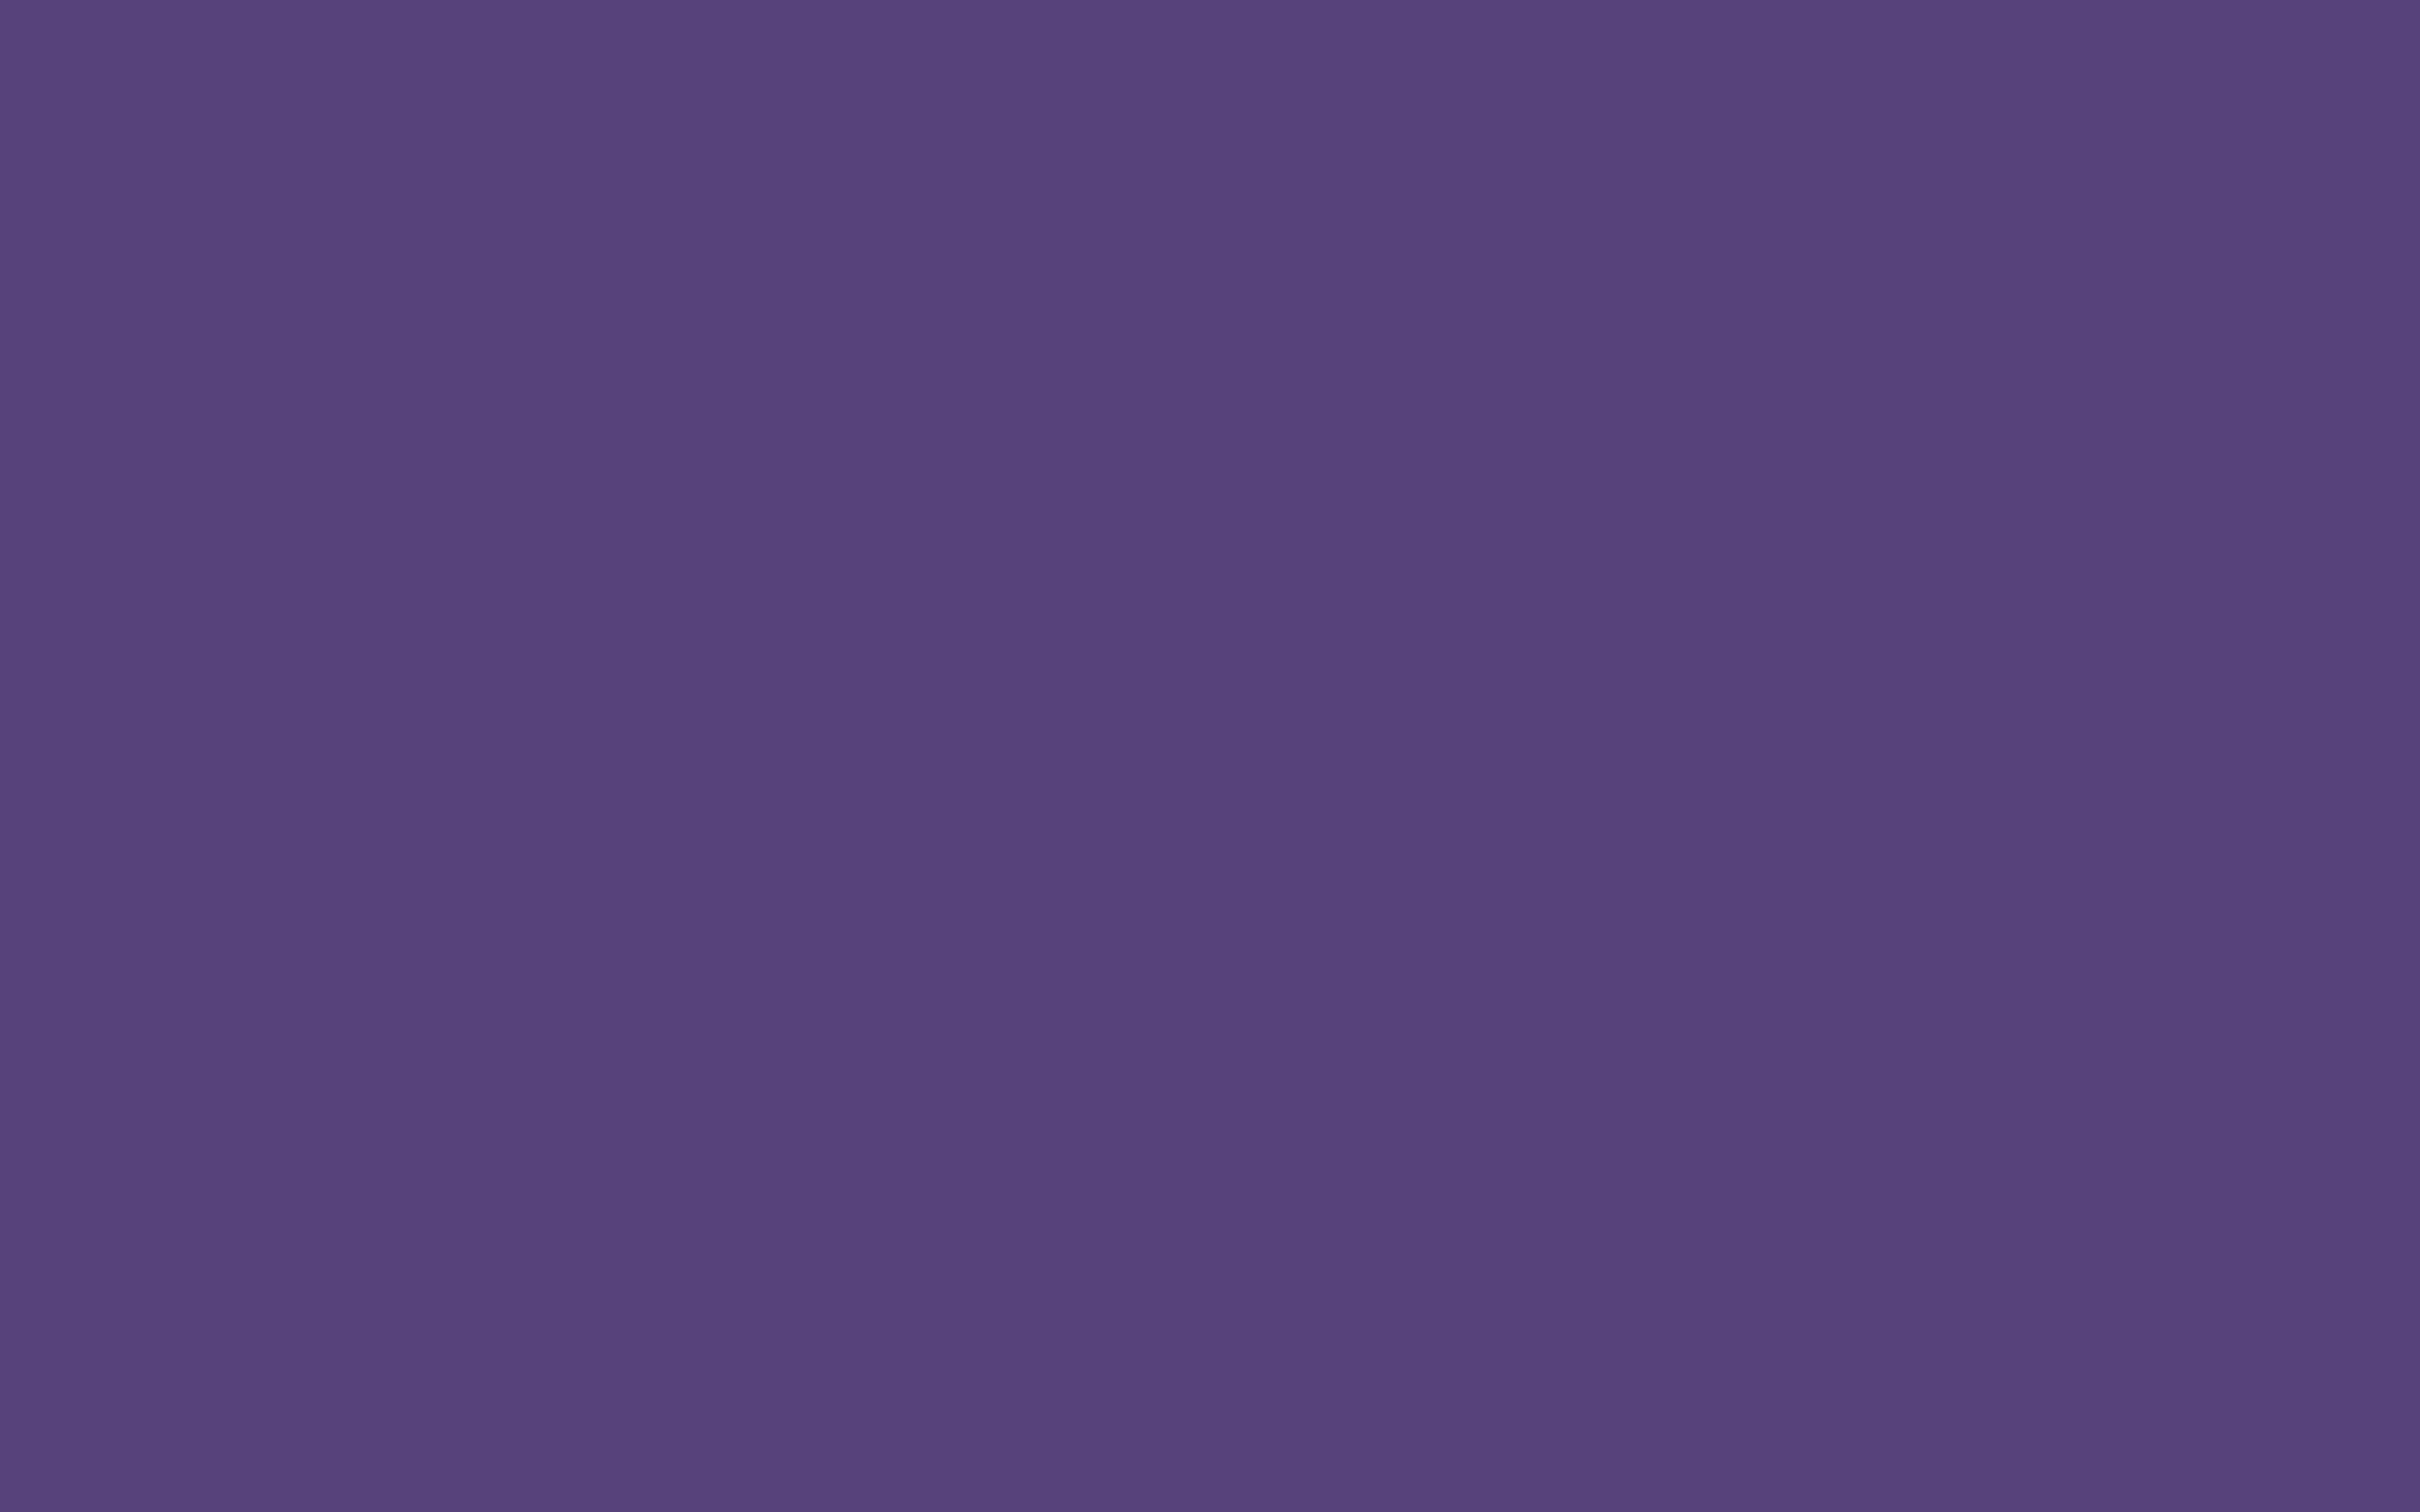 2880x1800 Cyber Grape Solid Color Background